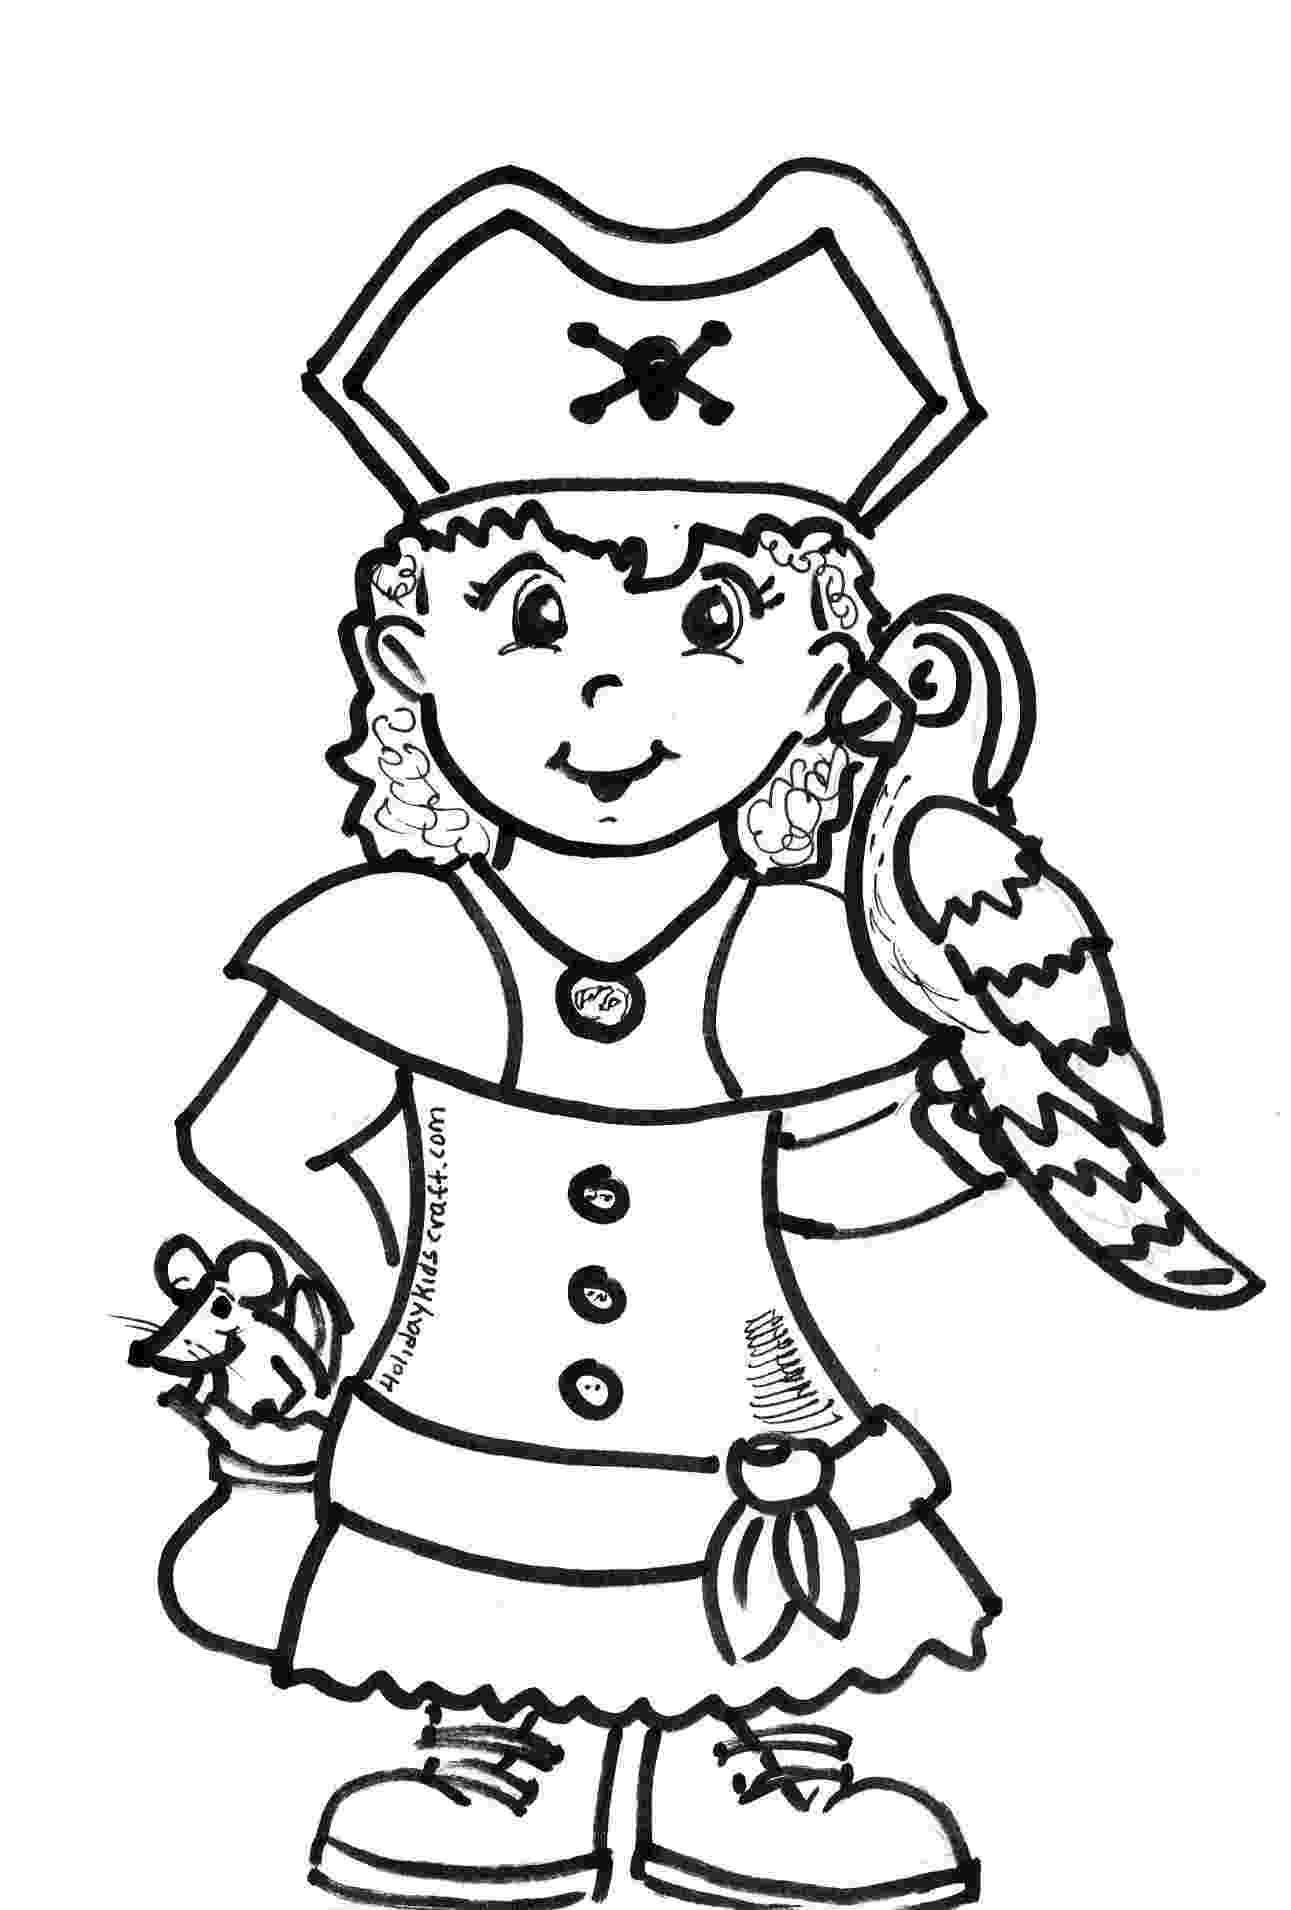 pirate coloring pirates coloring pages download and print pirates pirate coloring 1 1